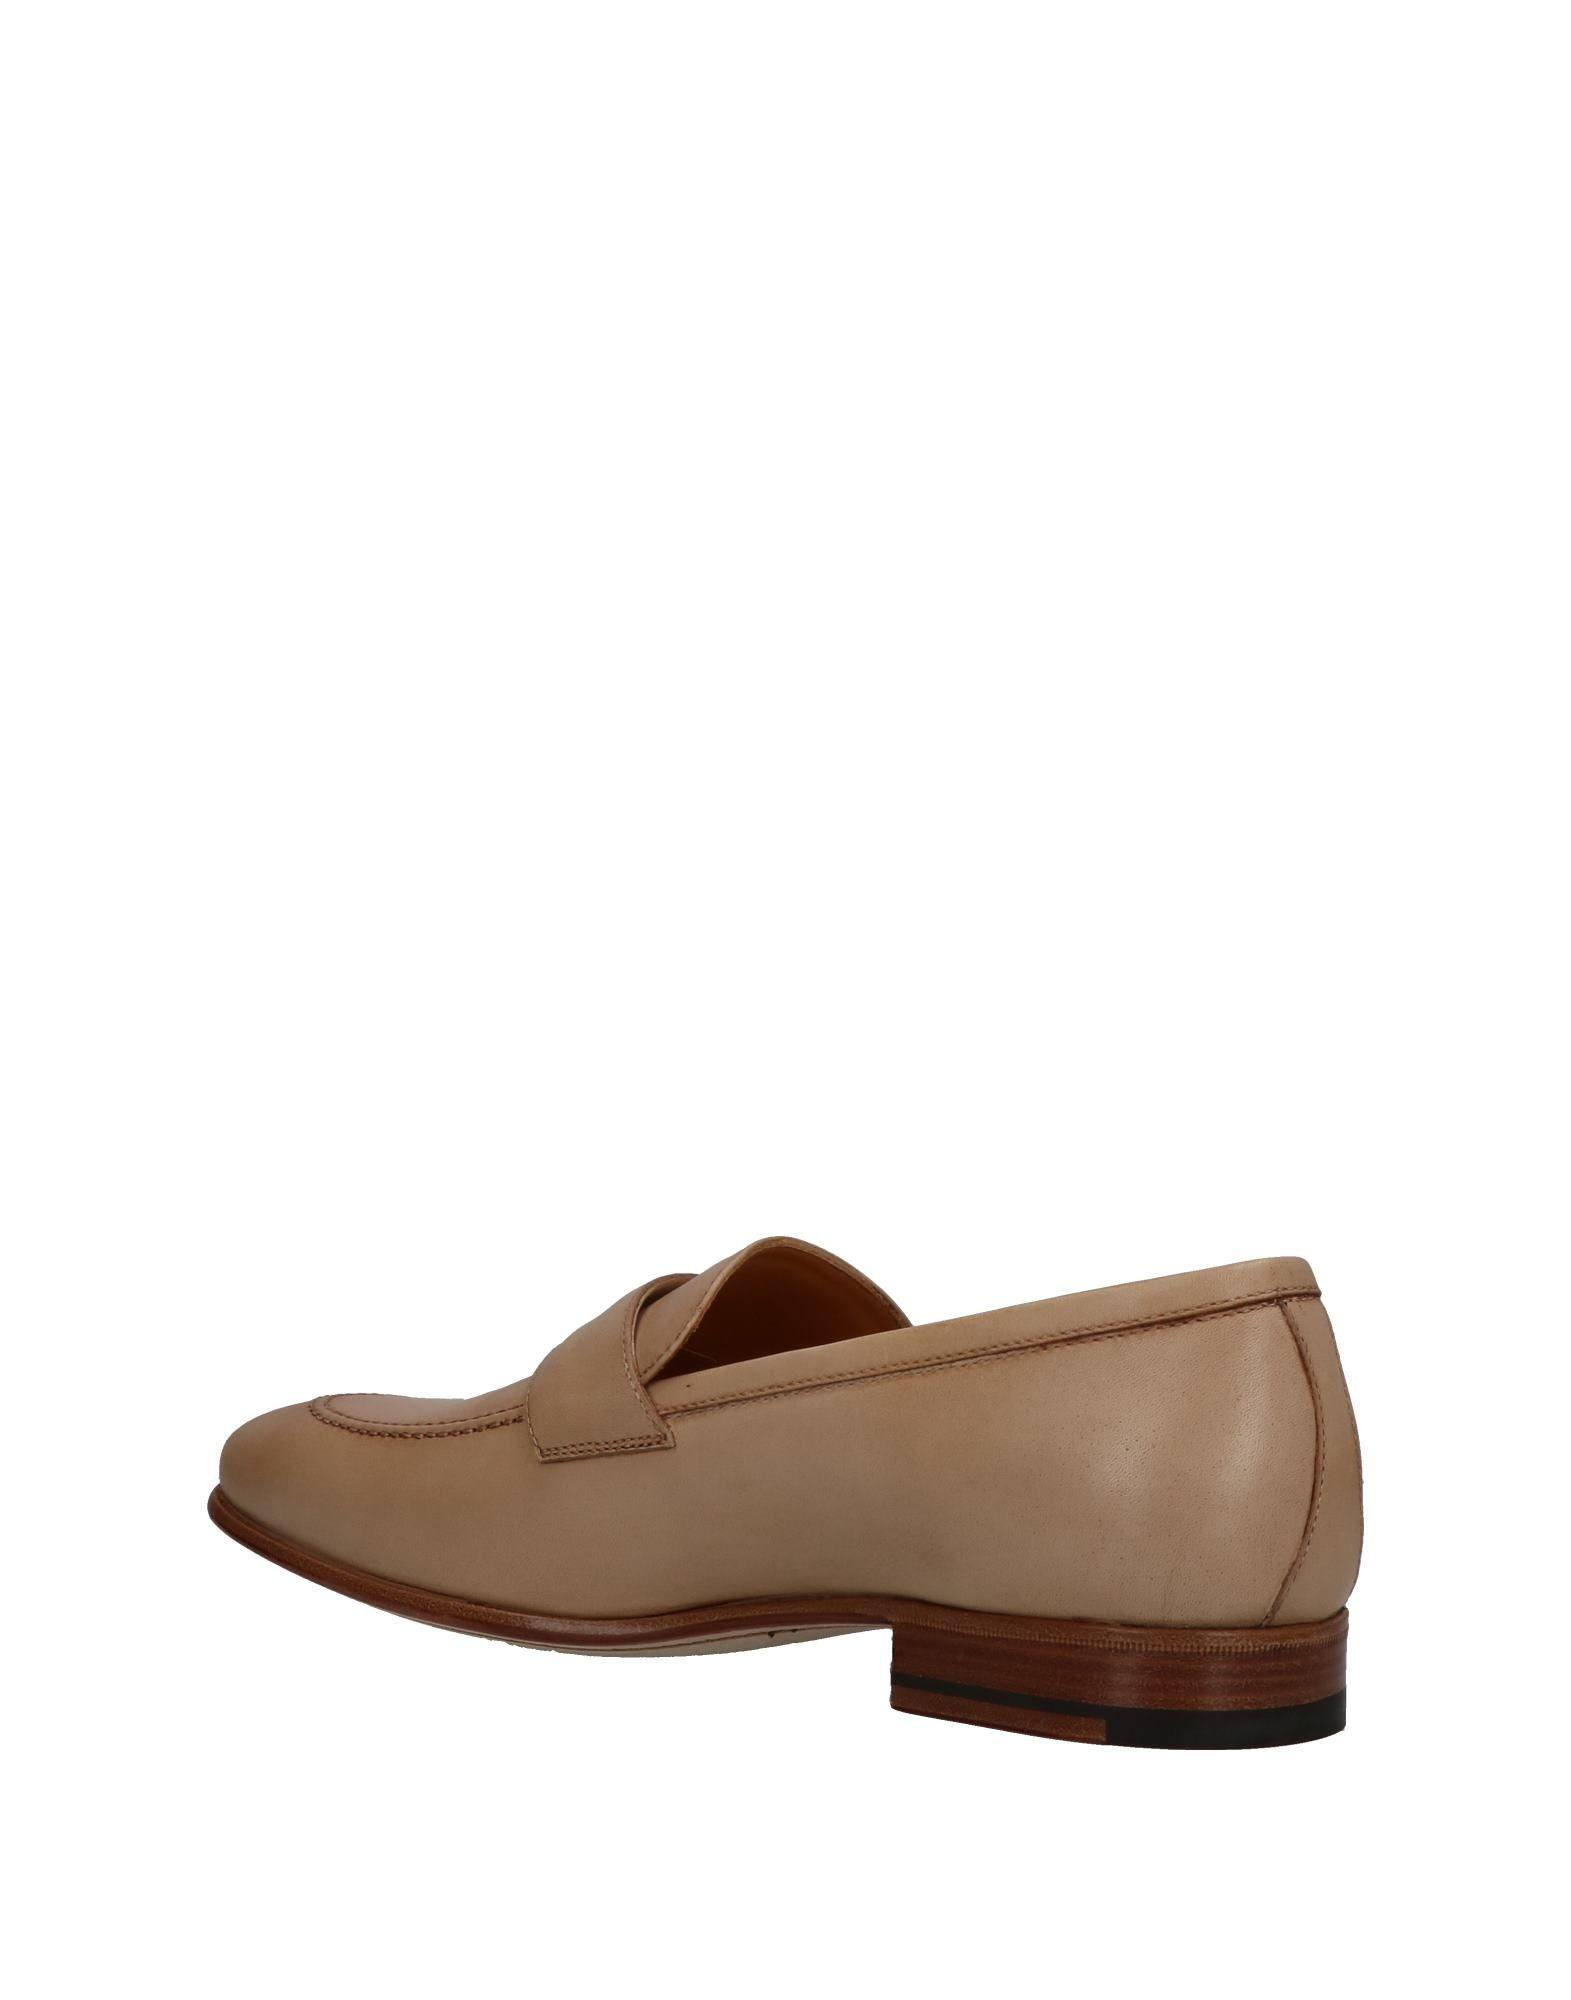 aac6cdafd71 Lyst - A.Testoni Loafer in Brown for Men